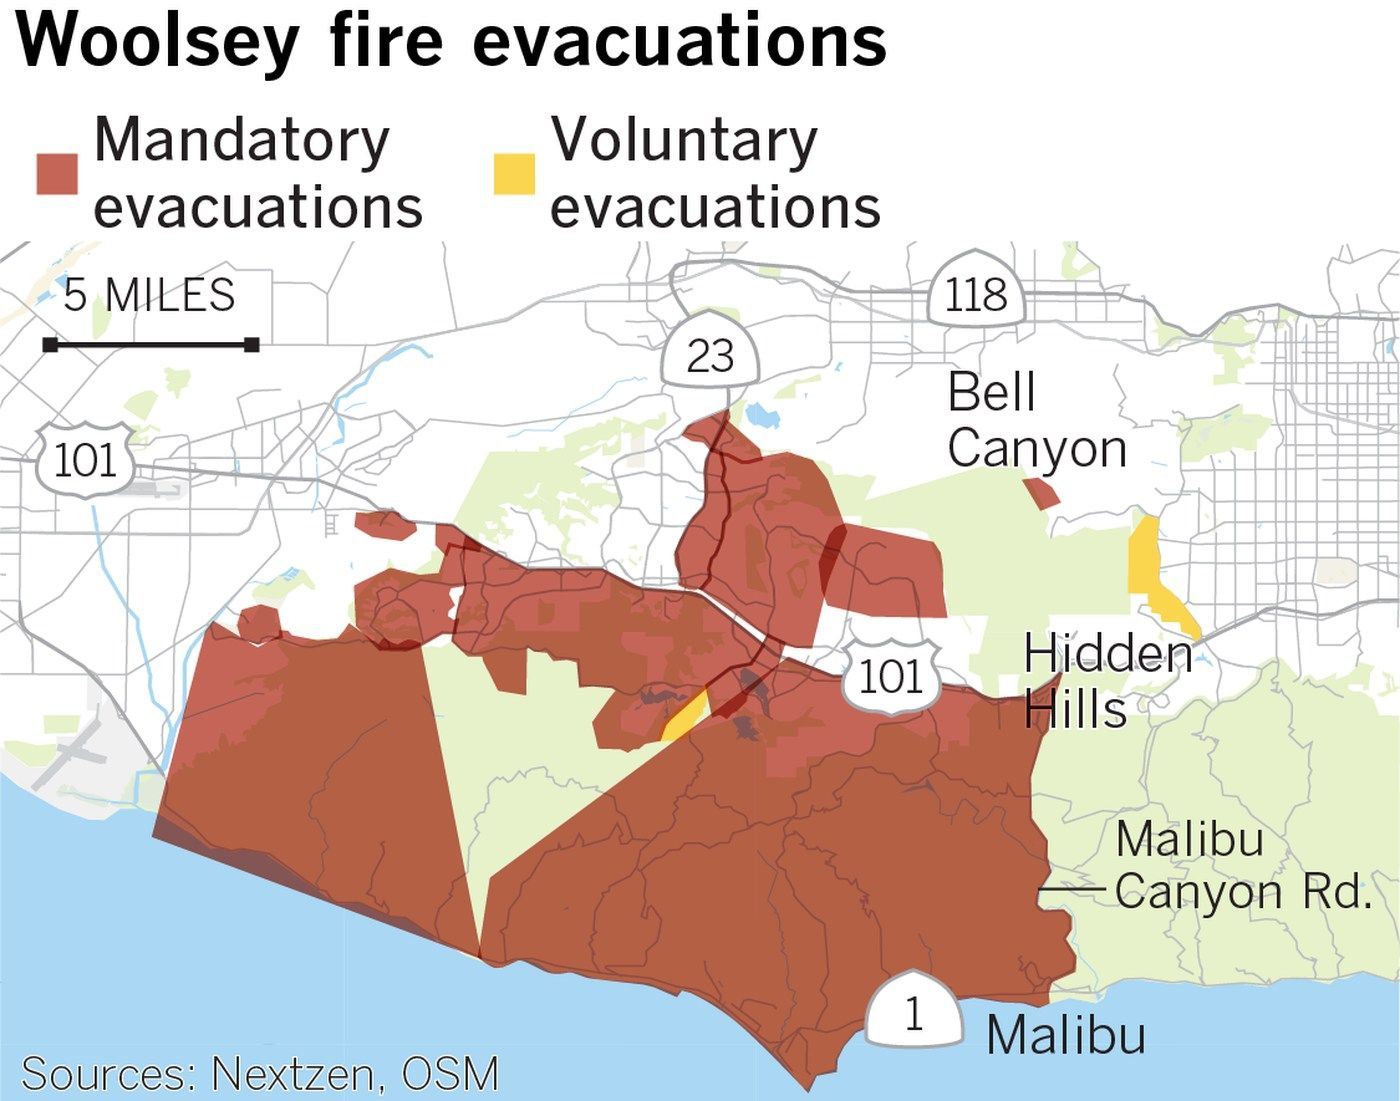 Woolsey Fire Forces Mass Evacuations From Malibu To Calabasas Many Homes Lost As Fire Grows To 10 000 Acres Fire Topanga Canyon Calabasas